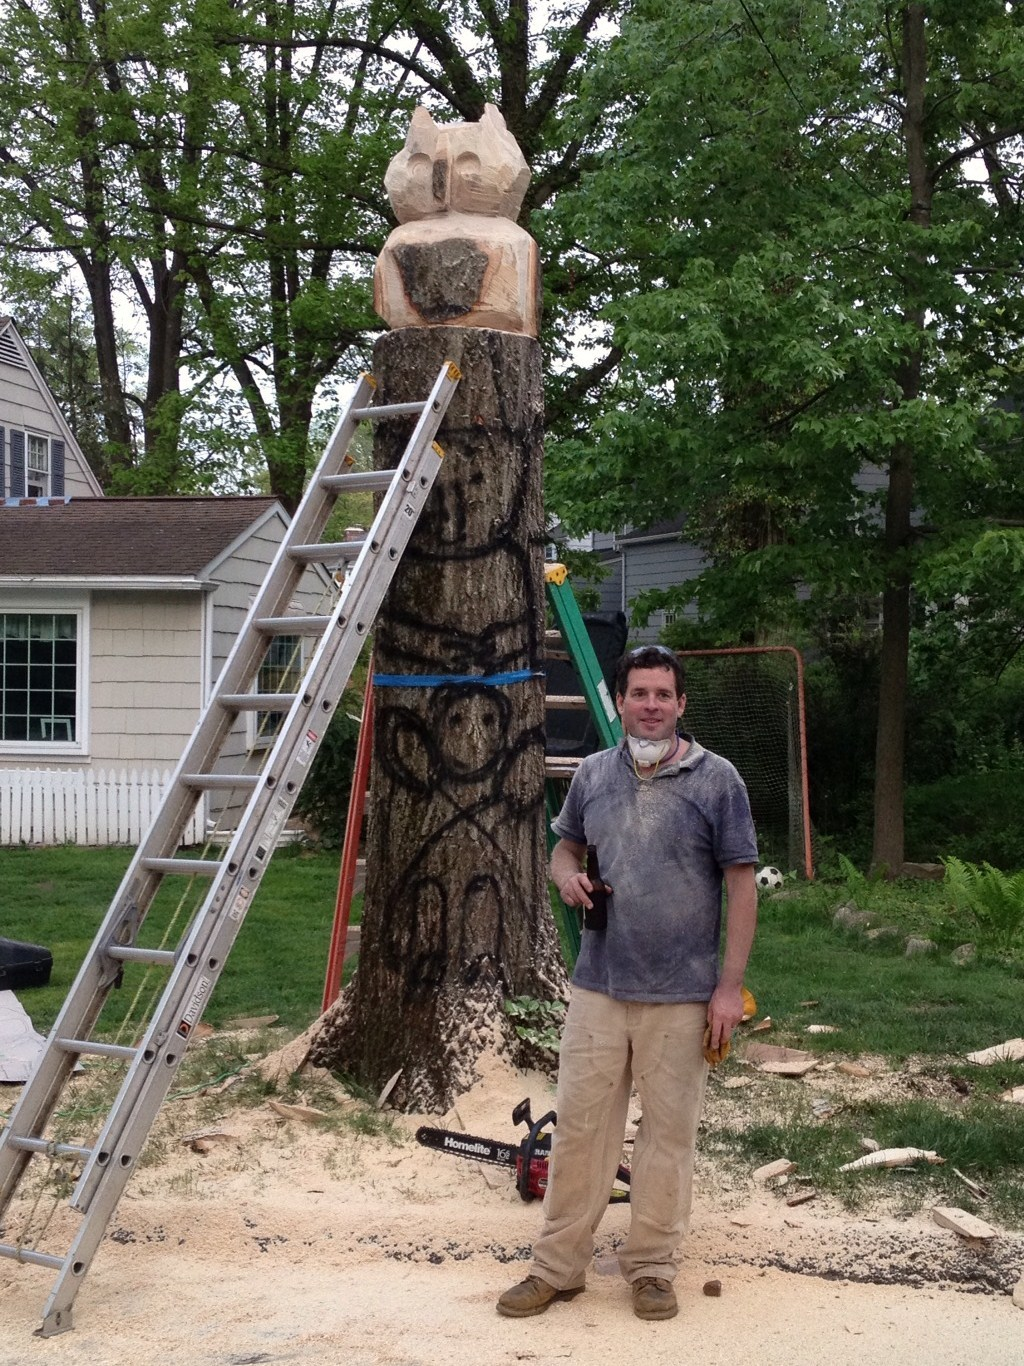 The edgewood road totem pole is a place to meet and take